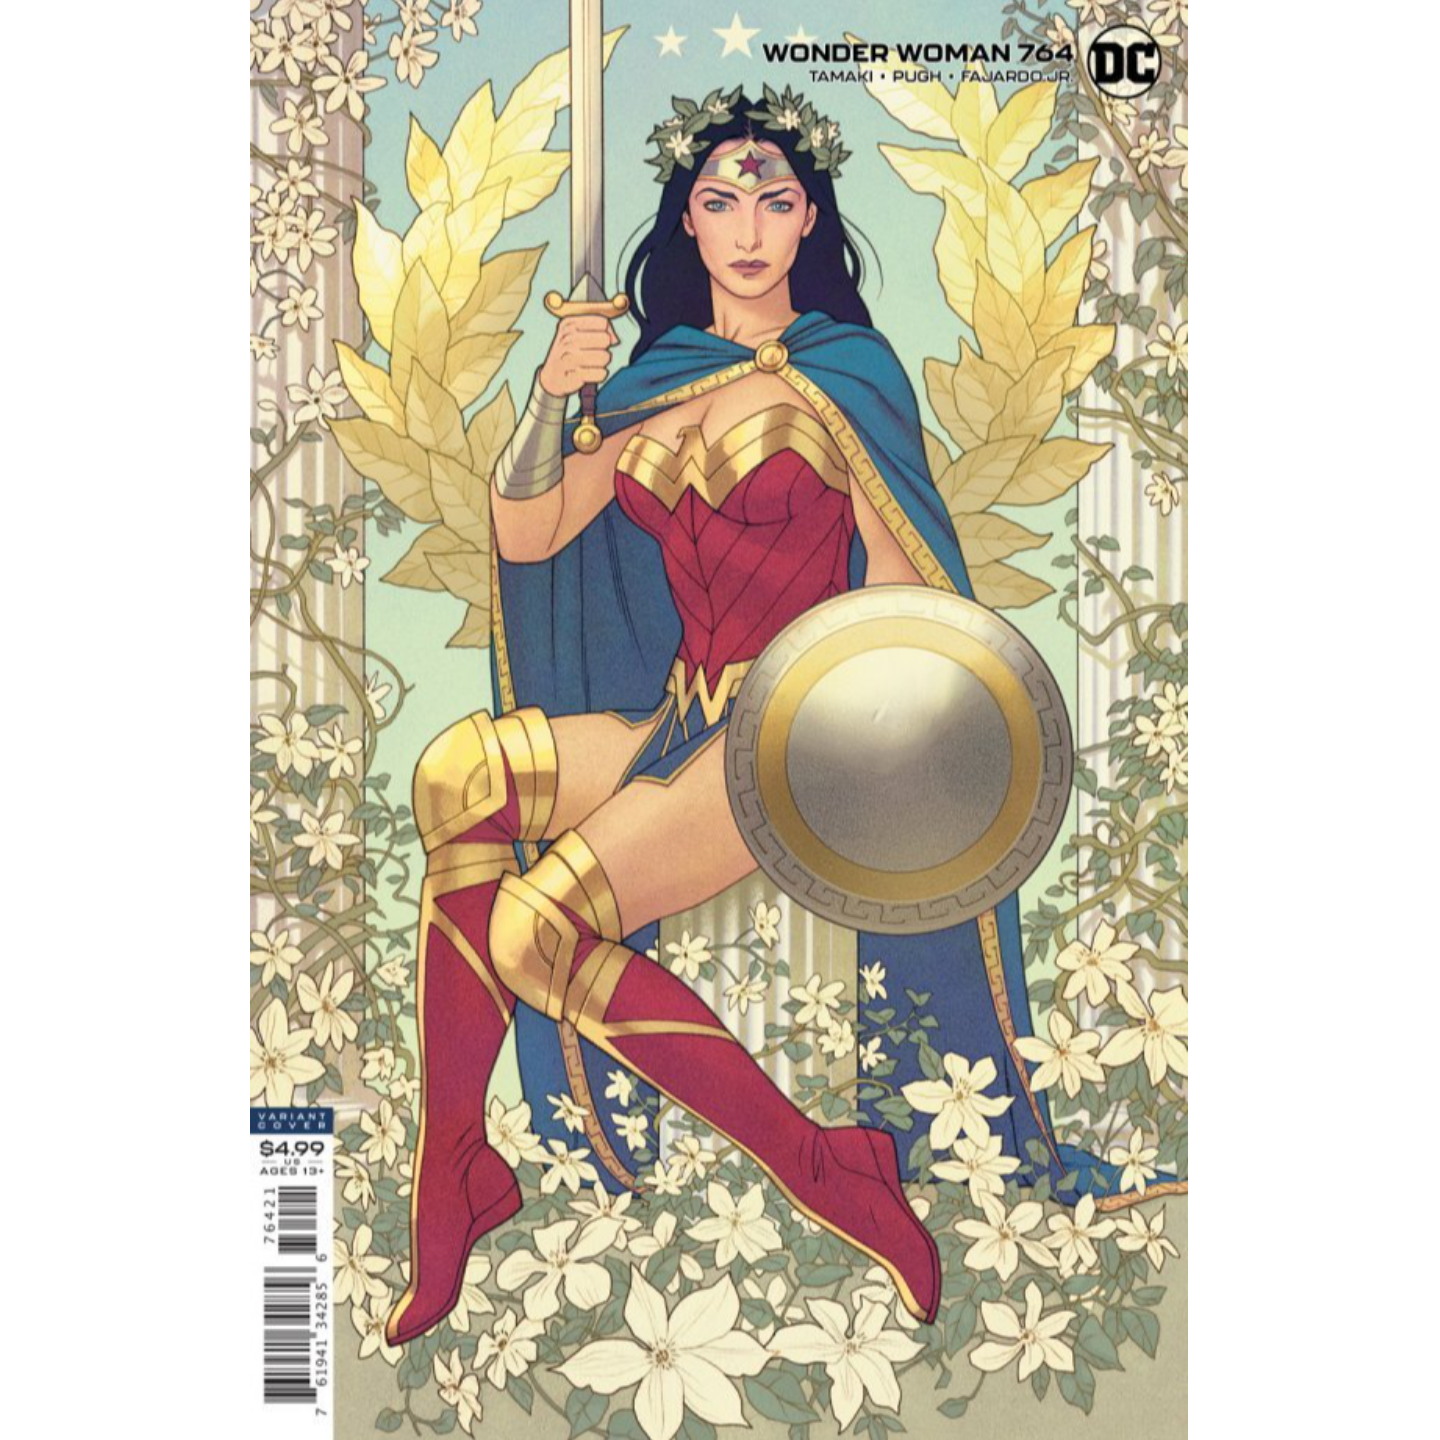 WONDER WOMAN #764 CVR B JOSHUA MIDDLETON CARD STOCK VAR